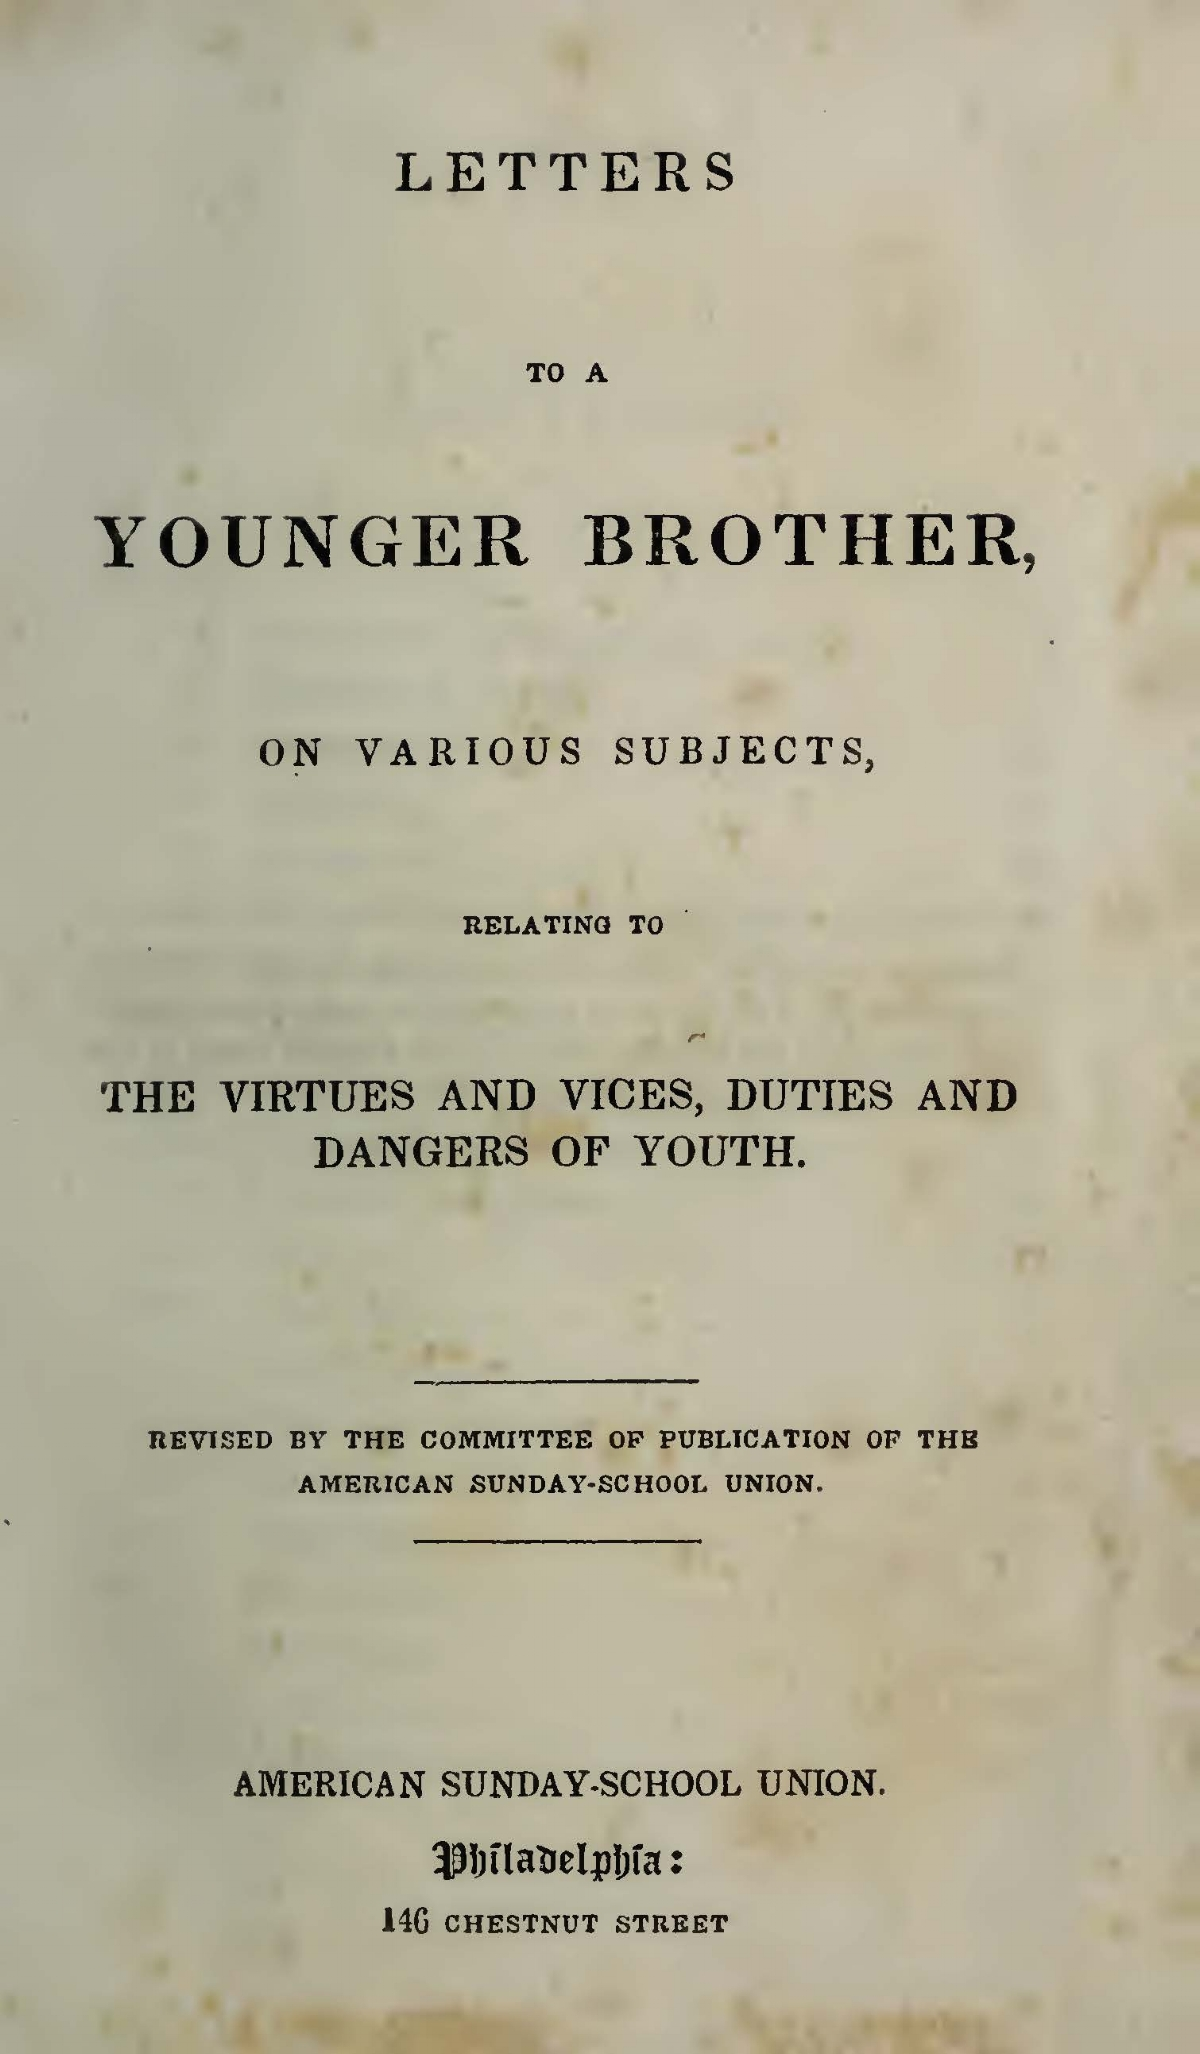 Alexander, James Waddel, Letters to a Younger Brother Title Page.jpg